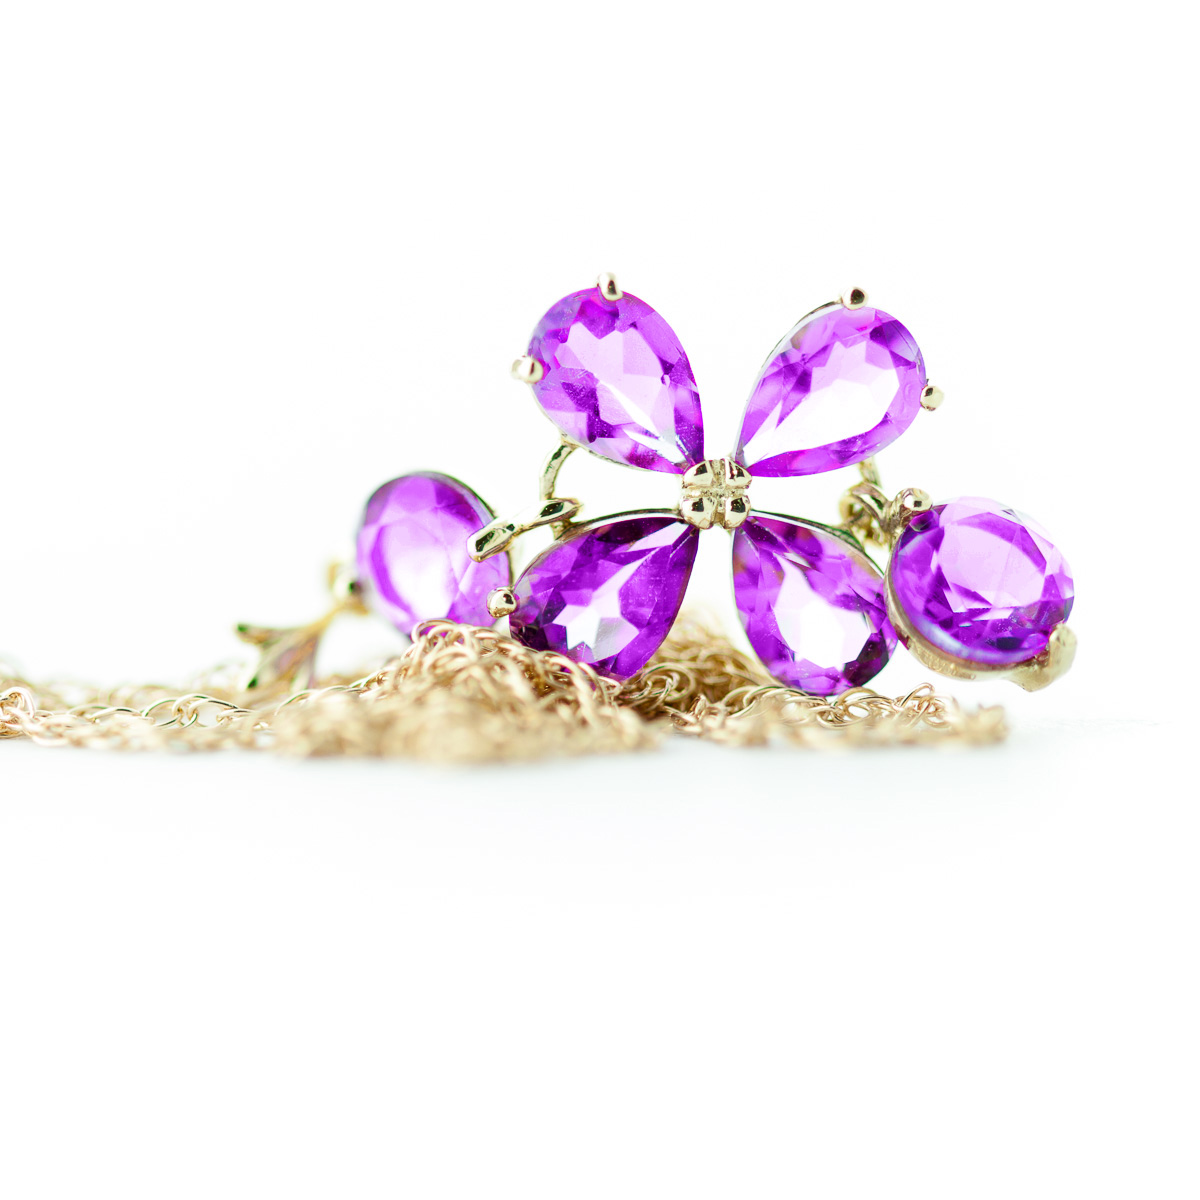 Pink Topaz Blossom Pendant Necklace 3.15ctw in 14K Gold